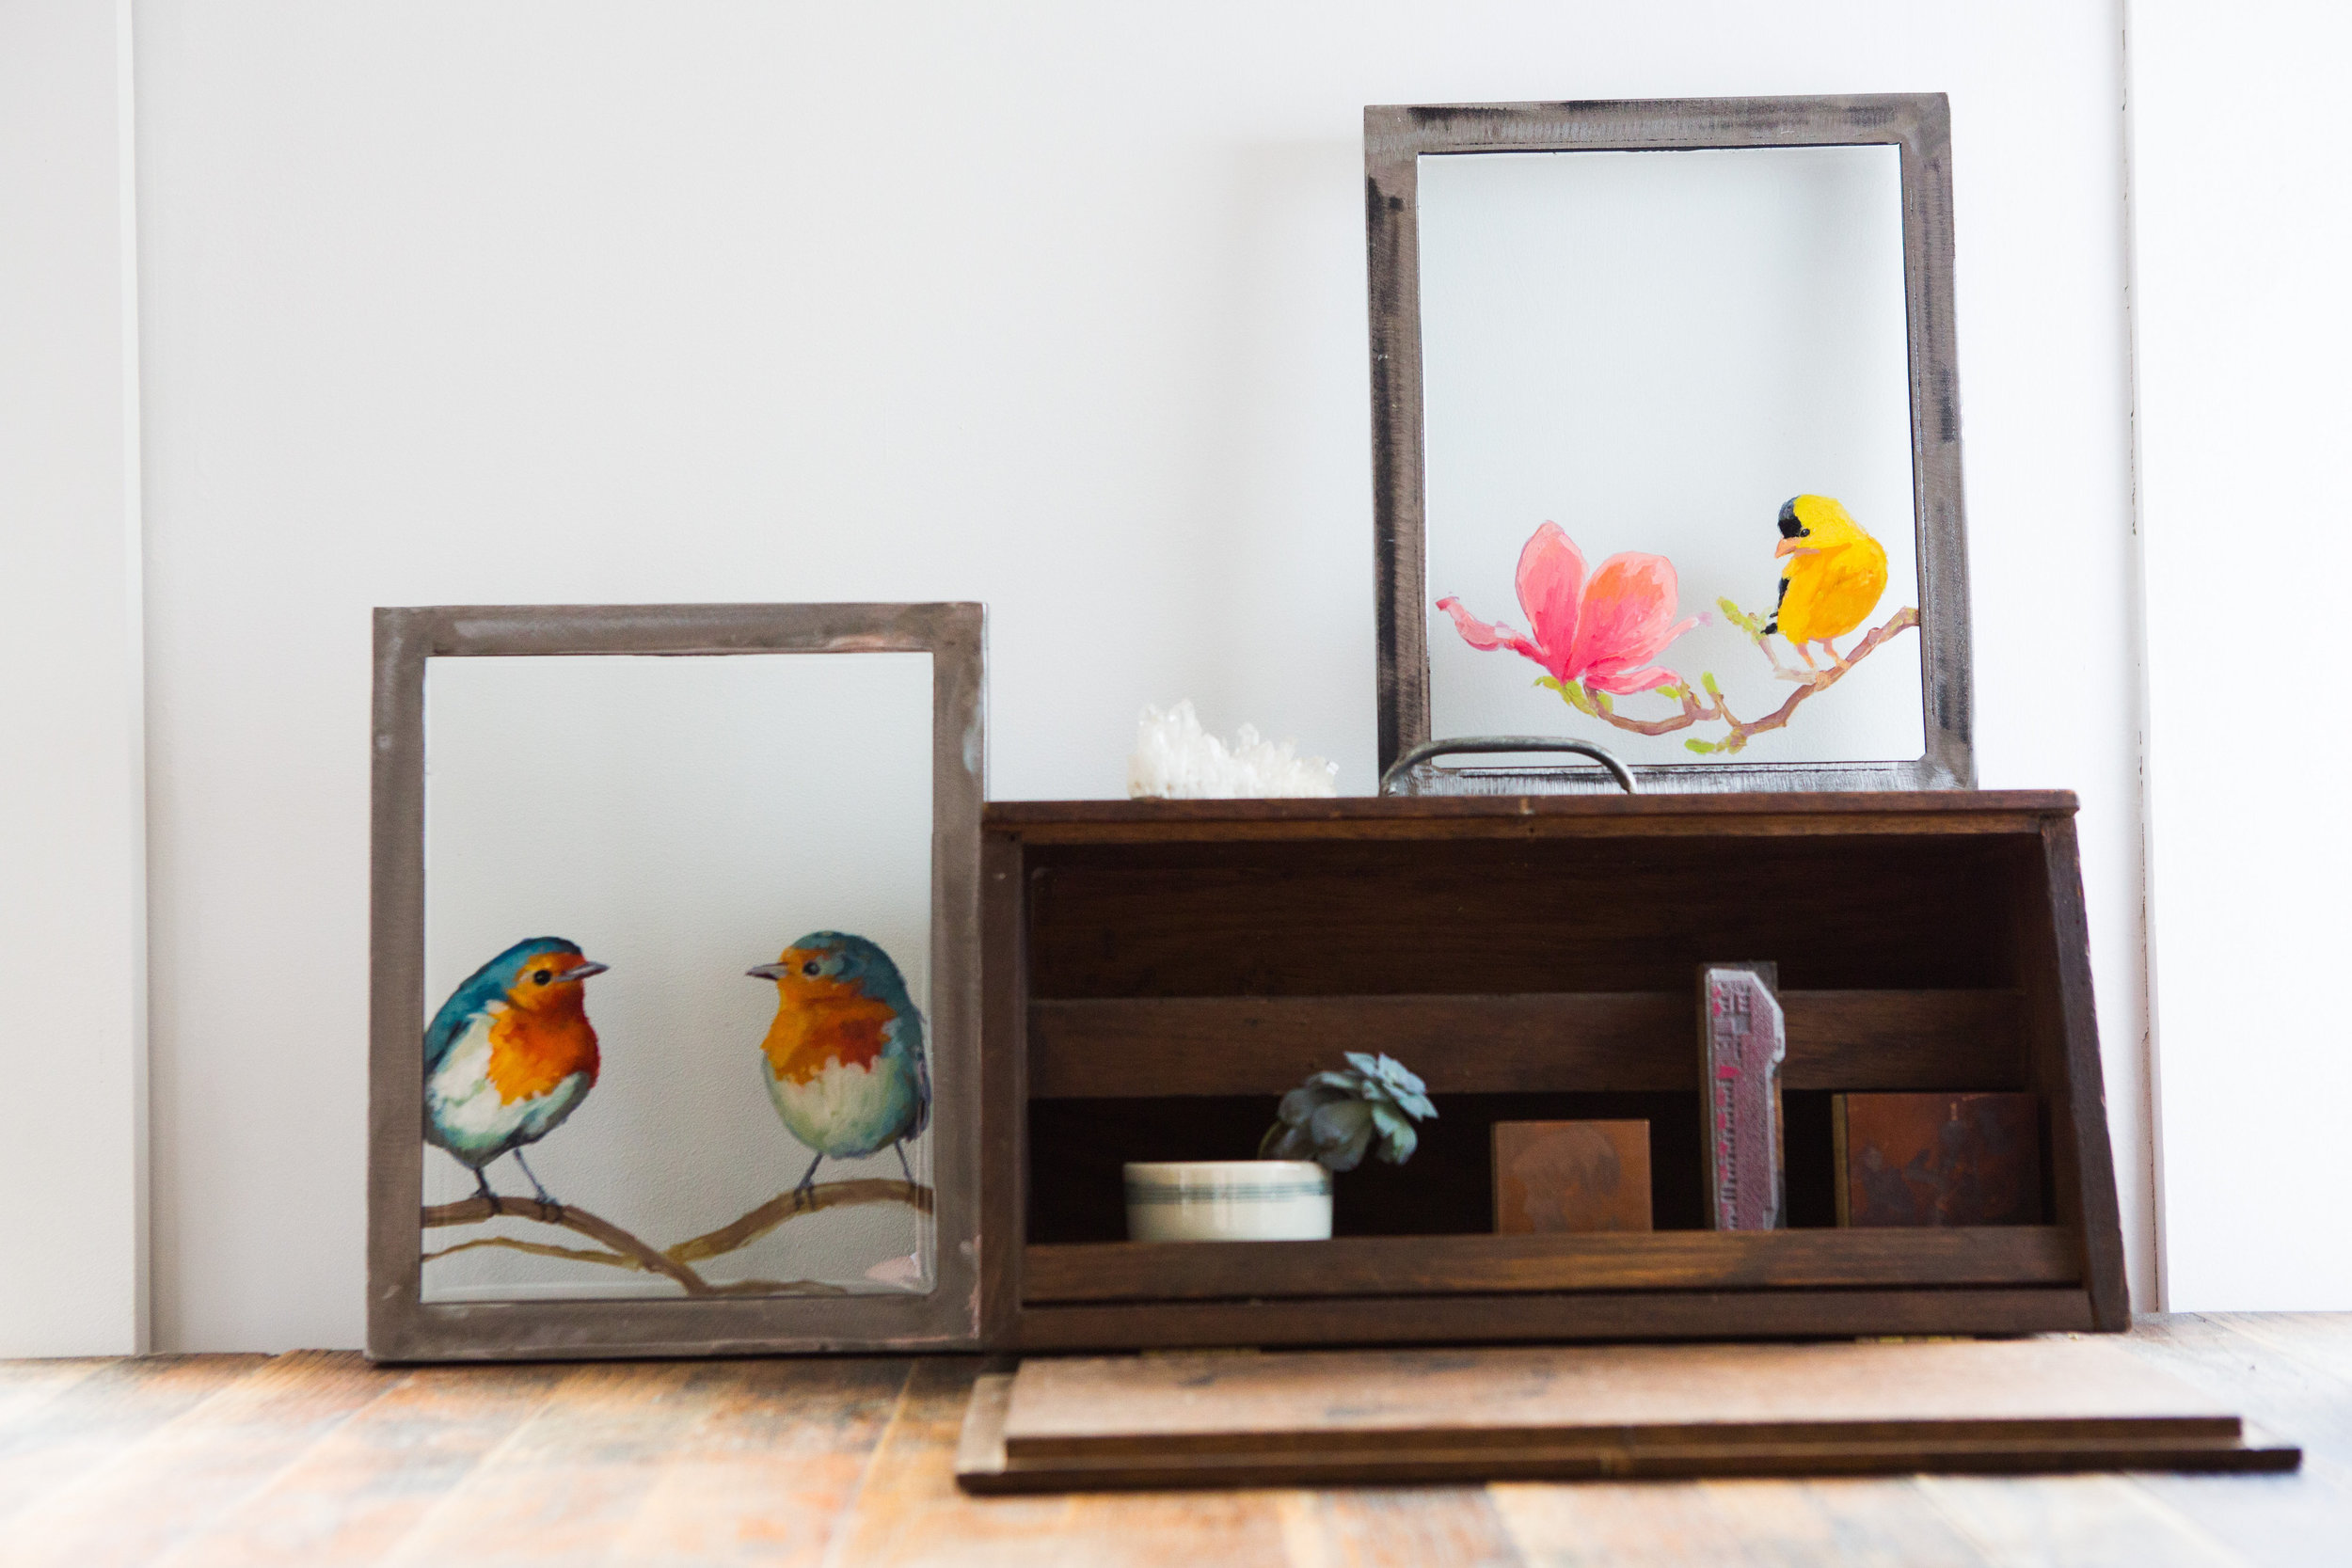 Birds on glass available in  online store  for purchase.      photo by Joanna Chattman